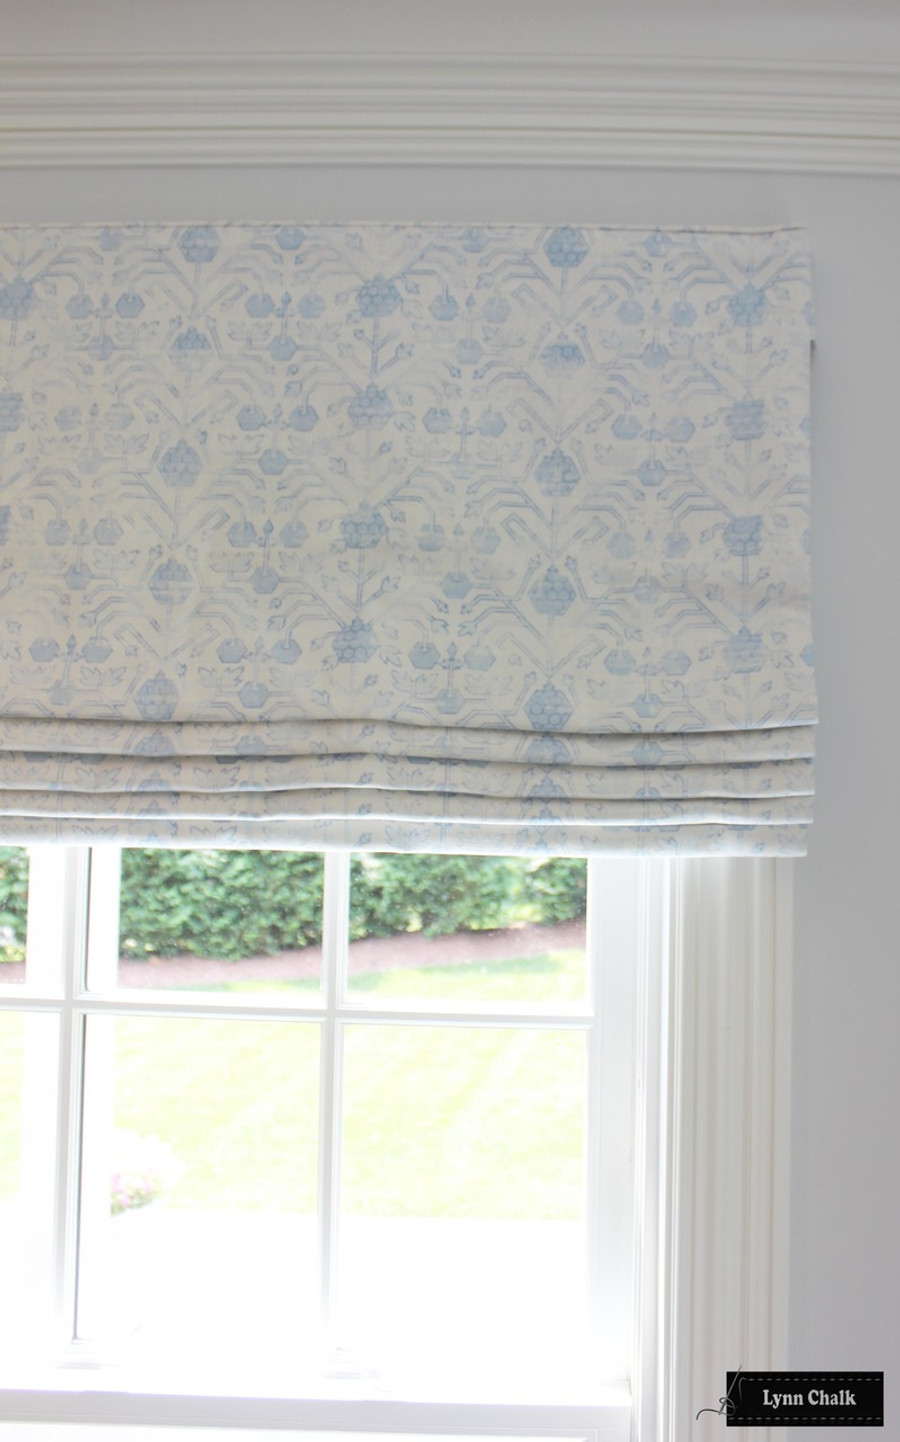 Zak & Fox Khotan Roman Shade (shown in Rubio-comes in other colors)